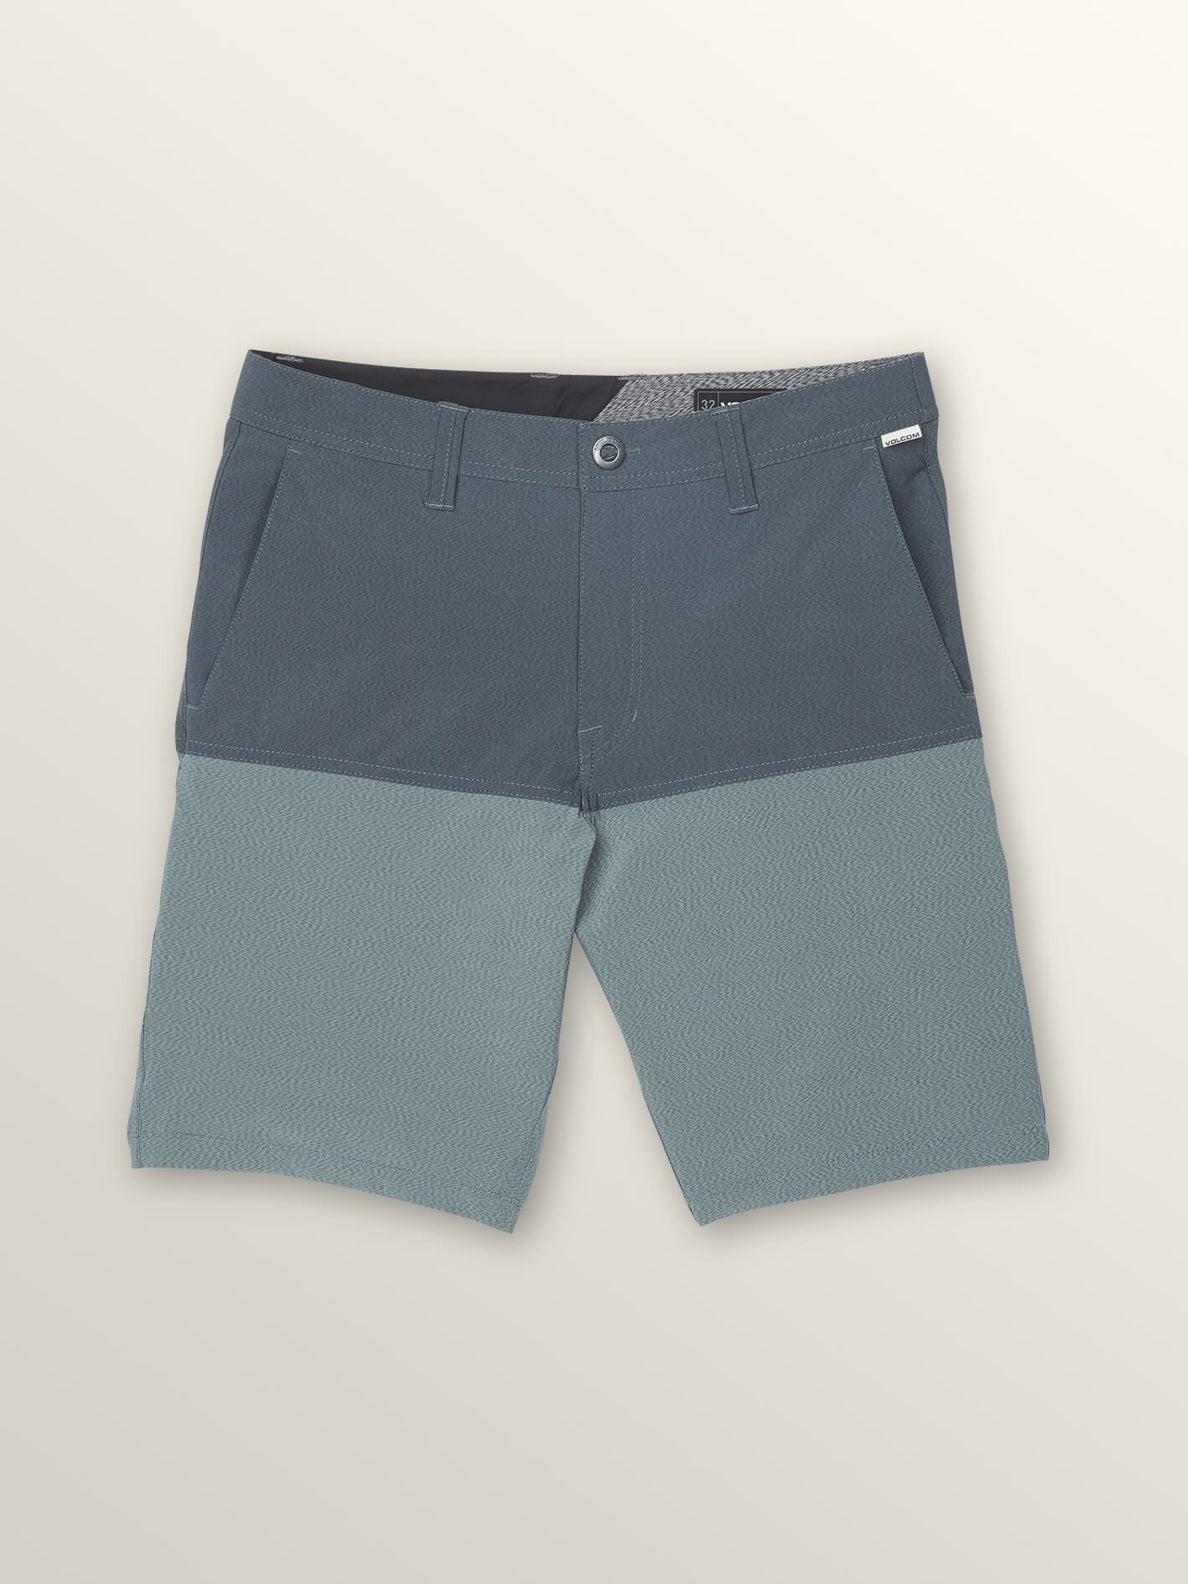 Surf 'N Turf Hybrid Block Hybrid Shorts In Lead, Second Alternate View